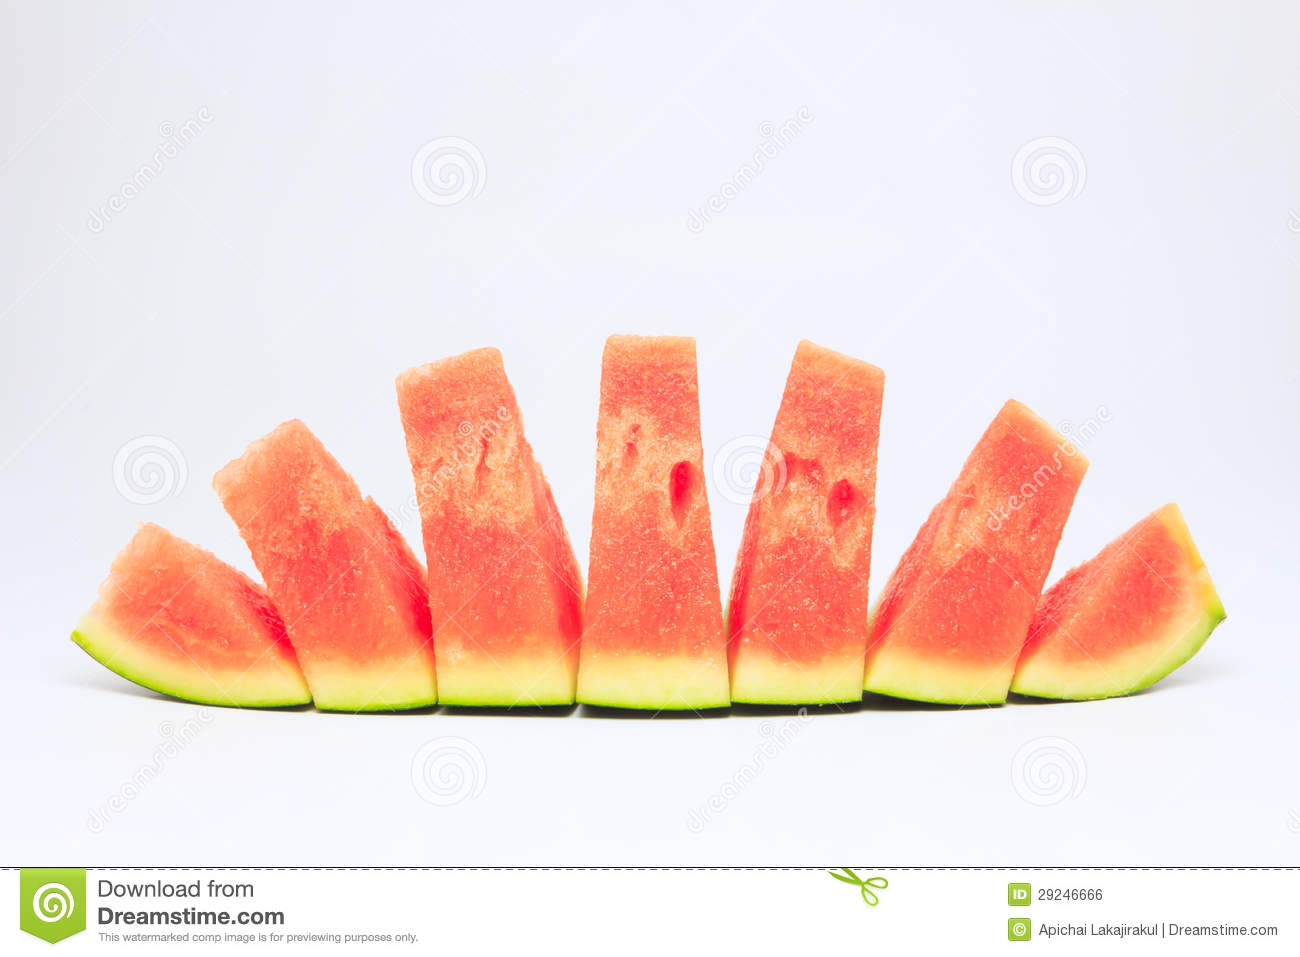 Download Melancia foto de stock. Imagem de melon, dieta, foto - 29246666